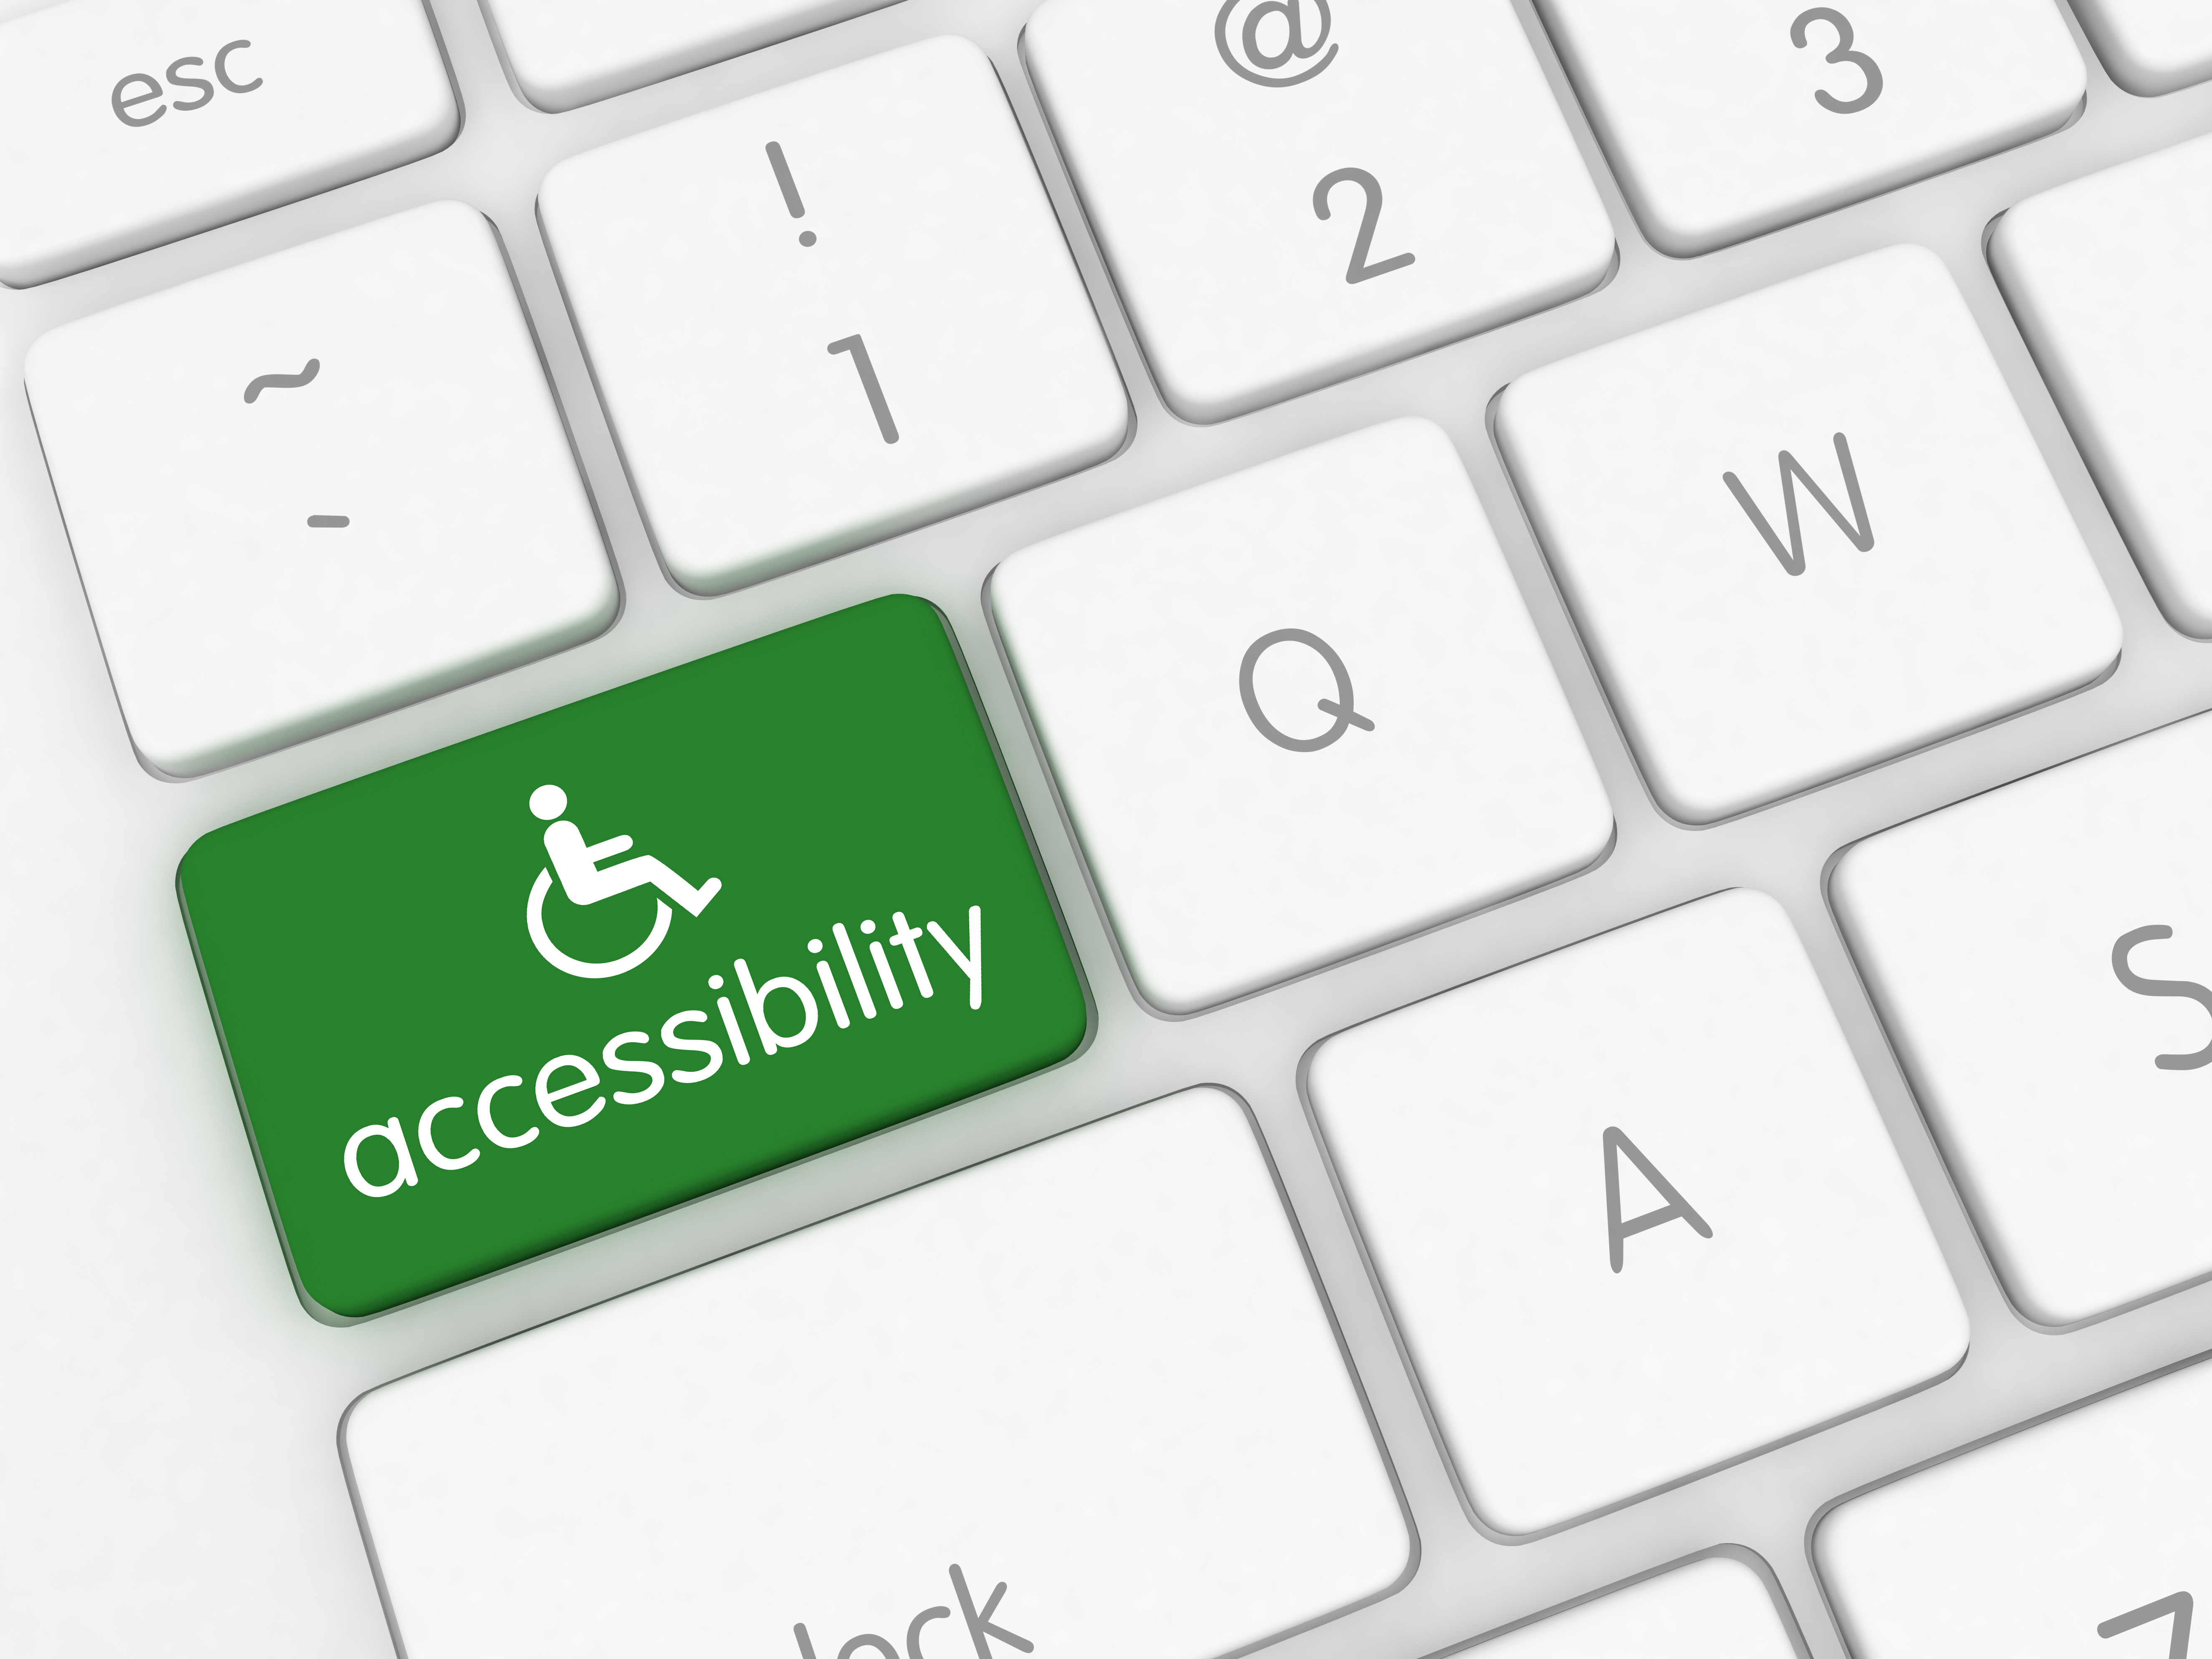 close up of keyboard keys and one key is labeled accessibility with the wheelchair symbol